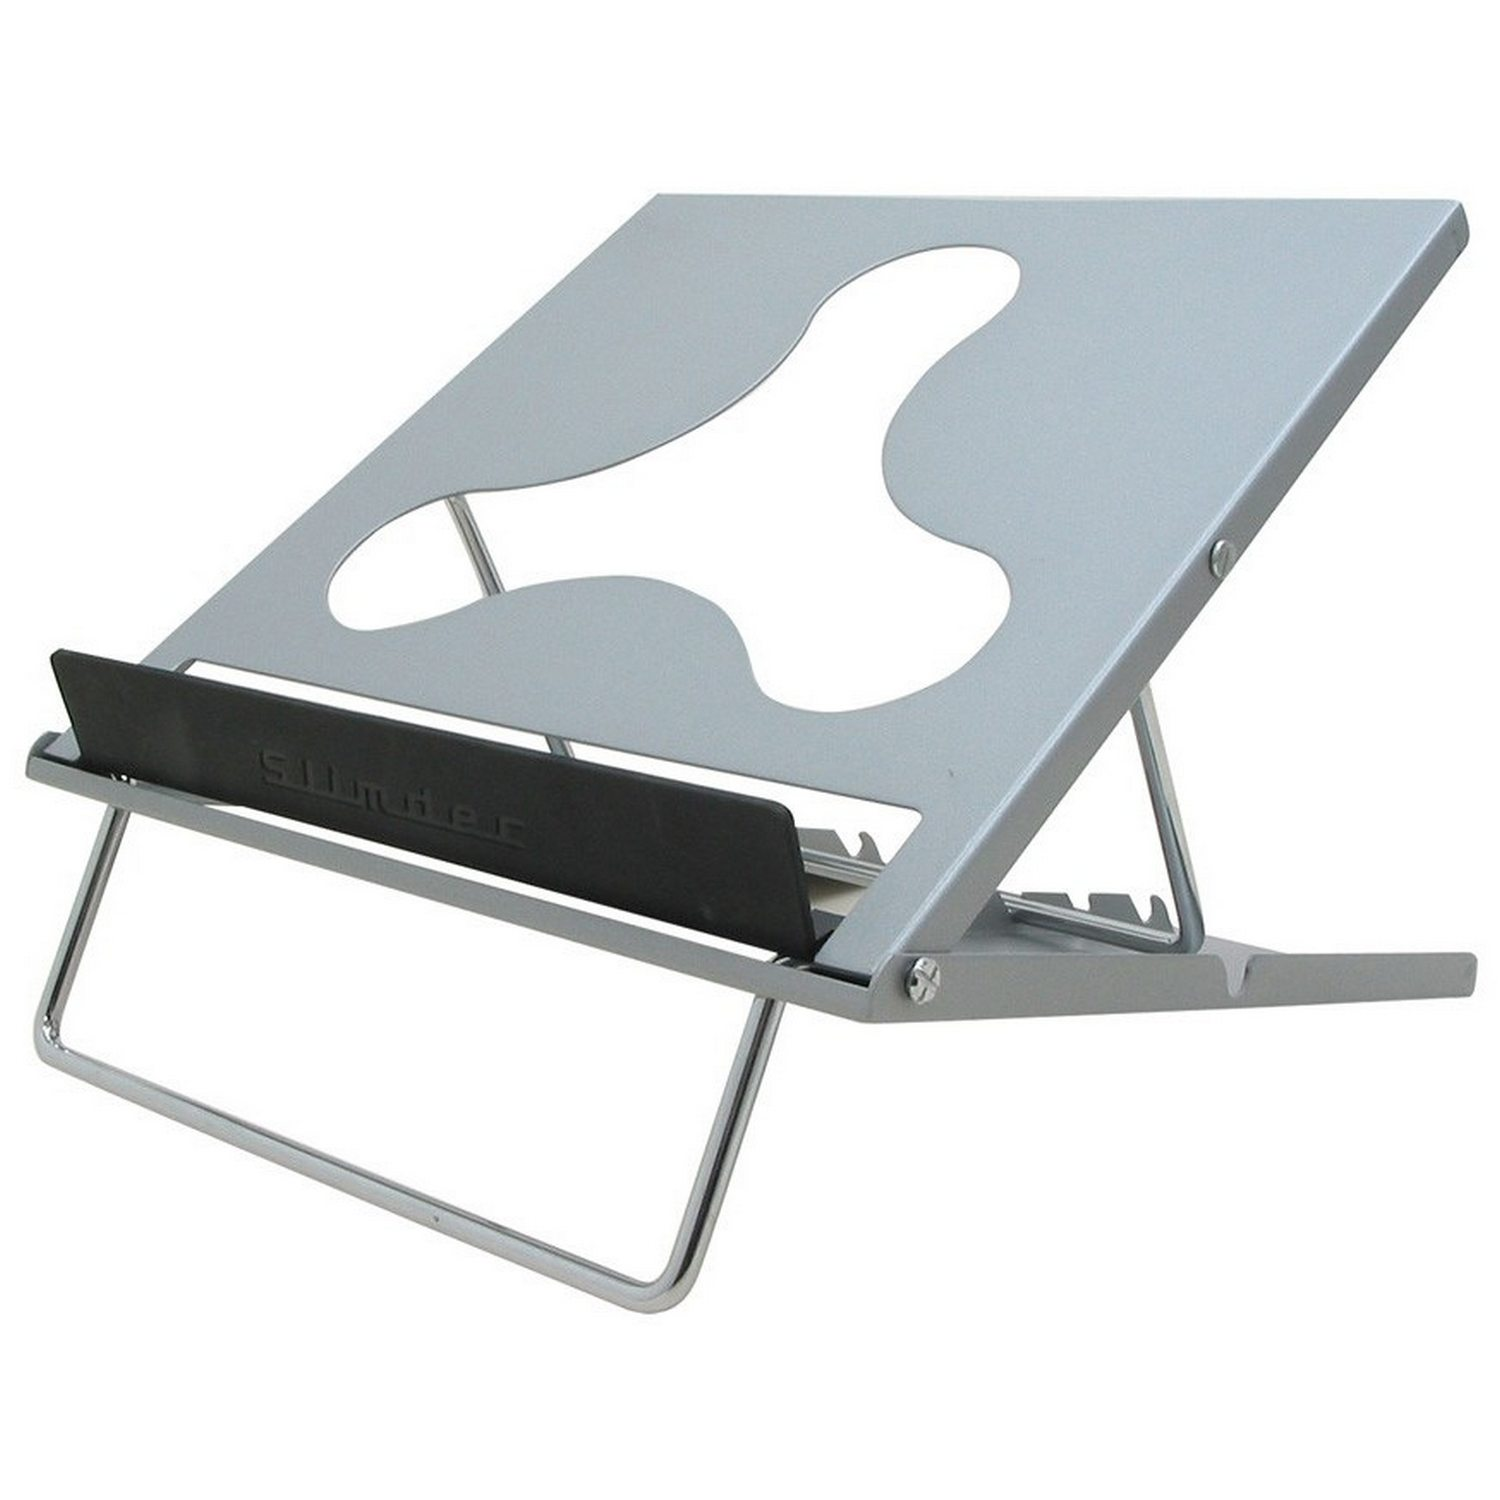 Portable notebook stand